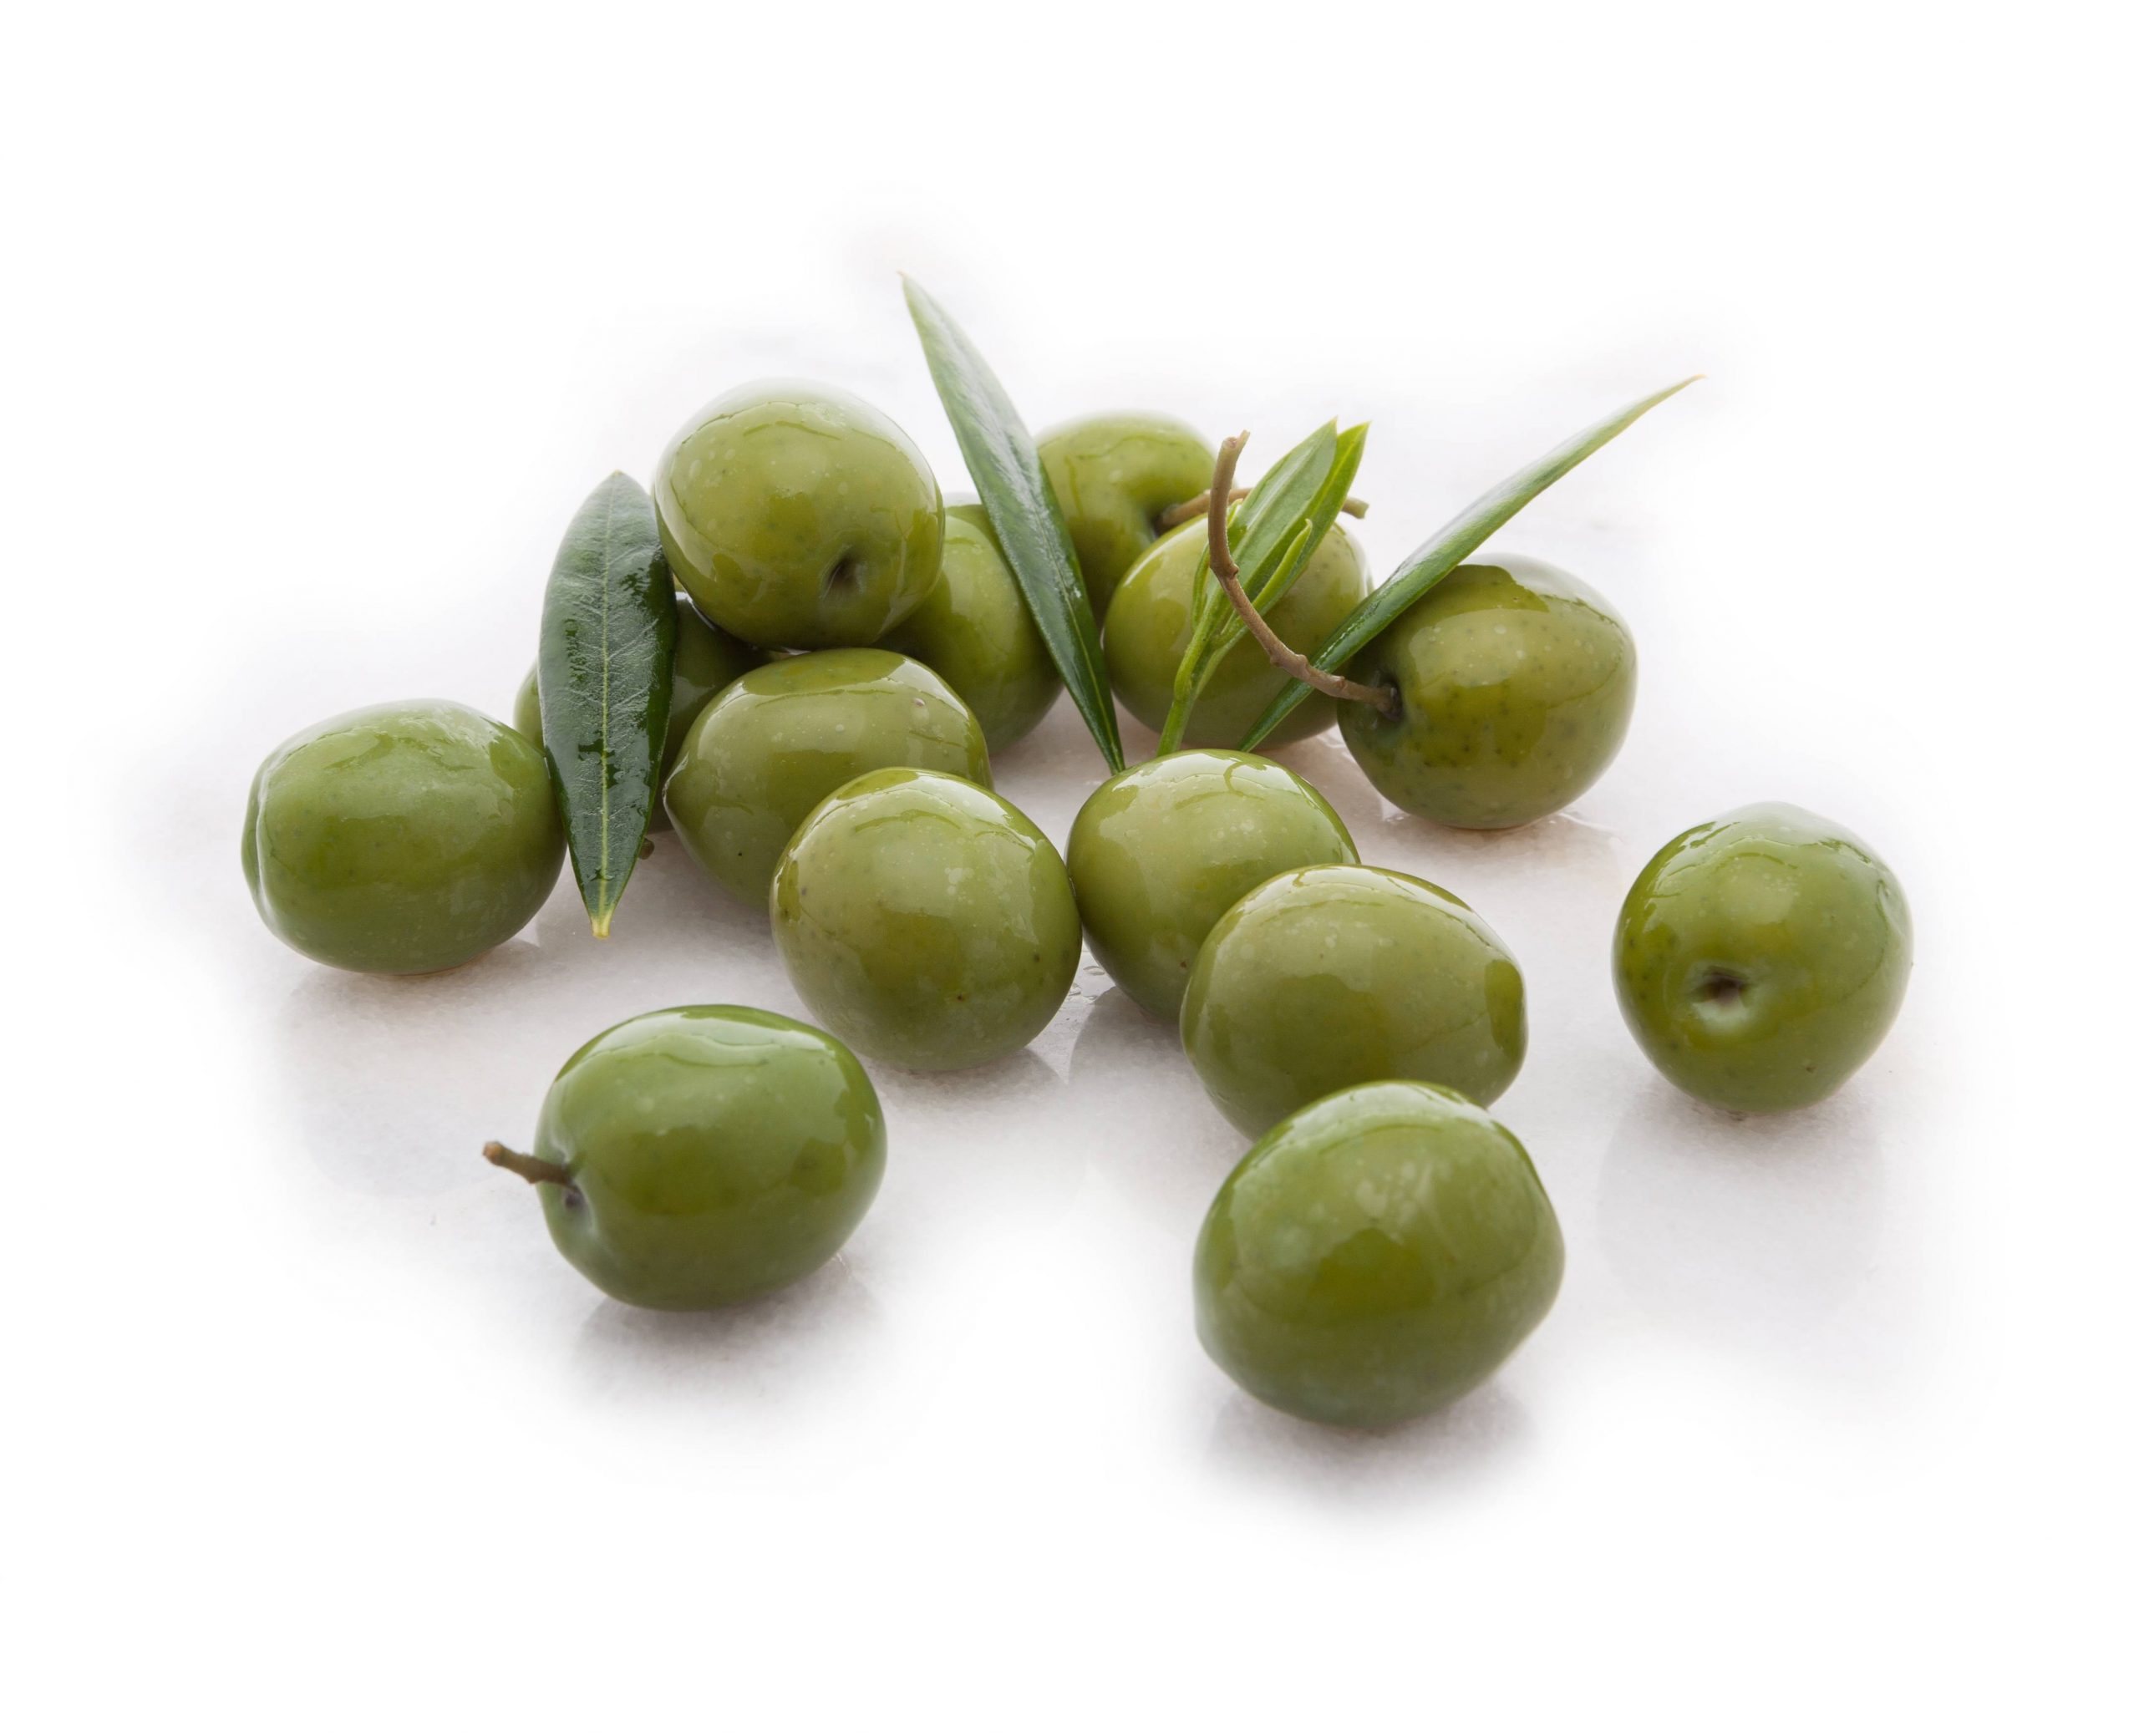 how many olives should i eat a day